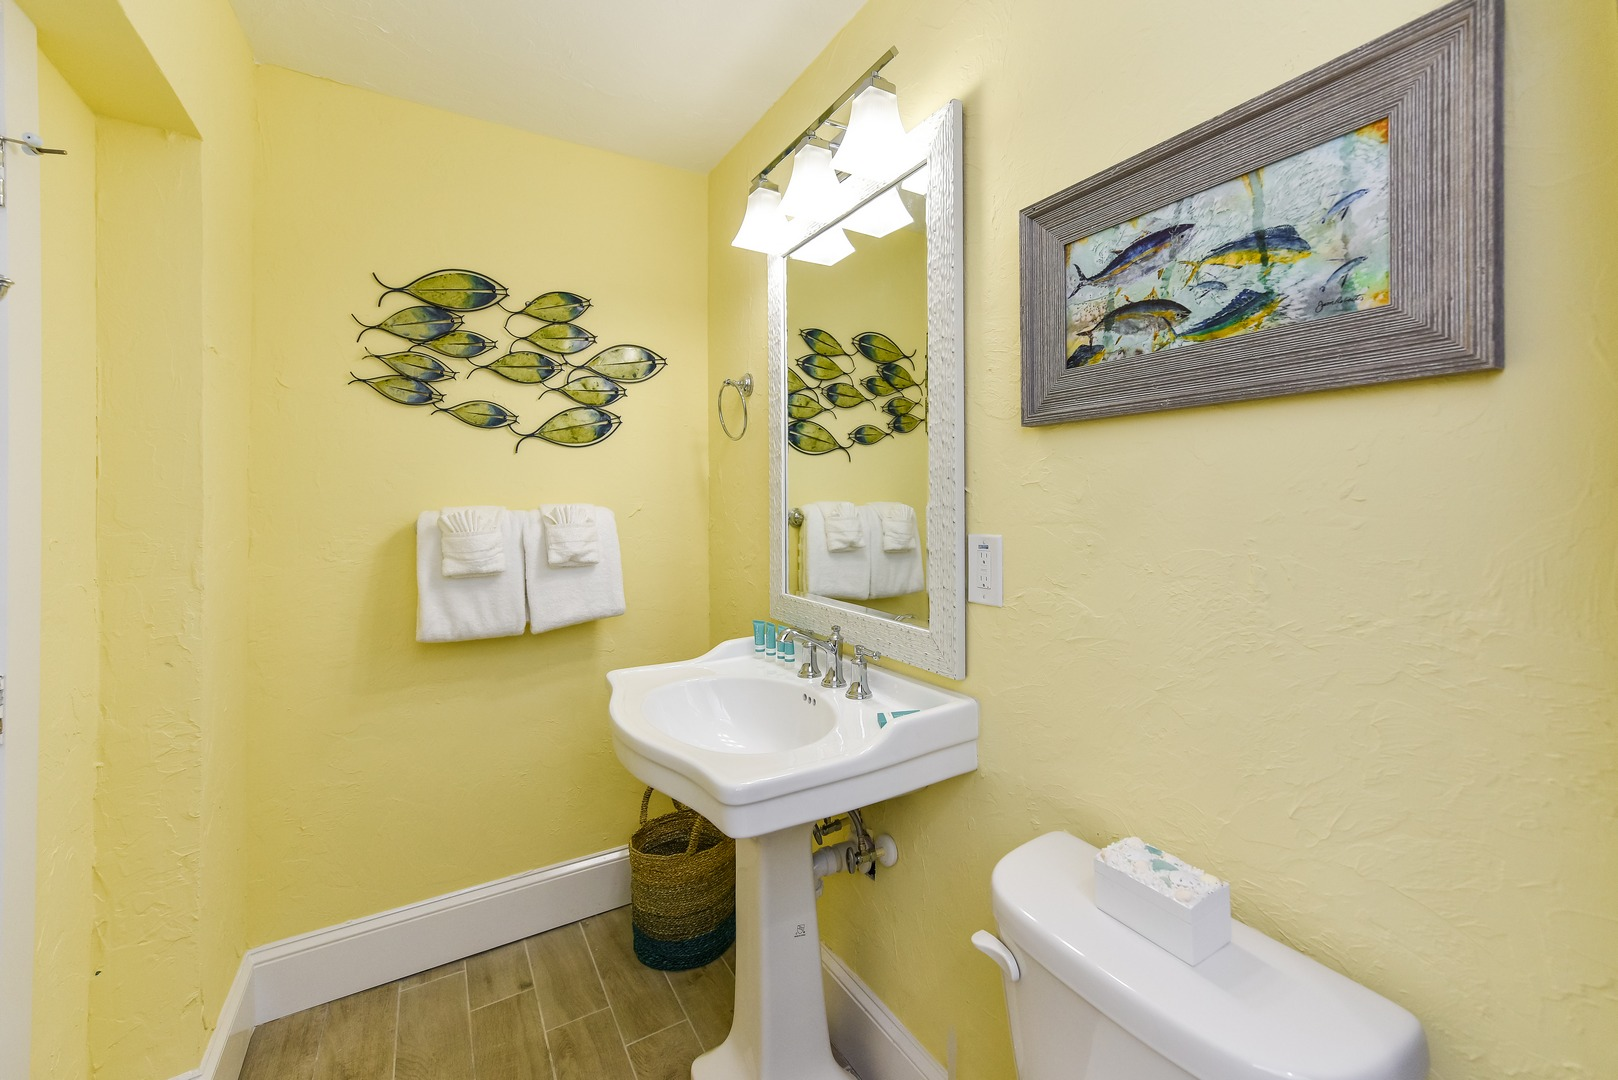 Pedestal Sink and More Yellow Fin Tuna Décor